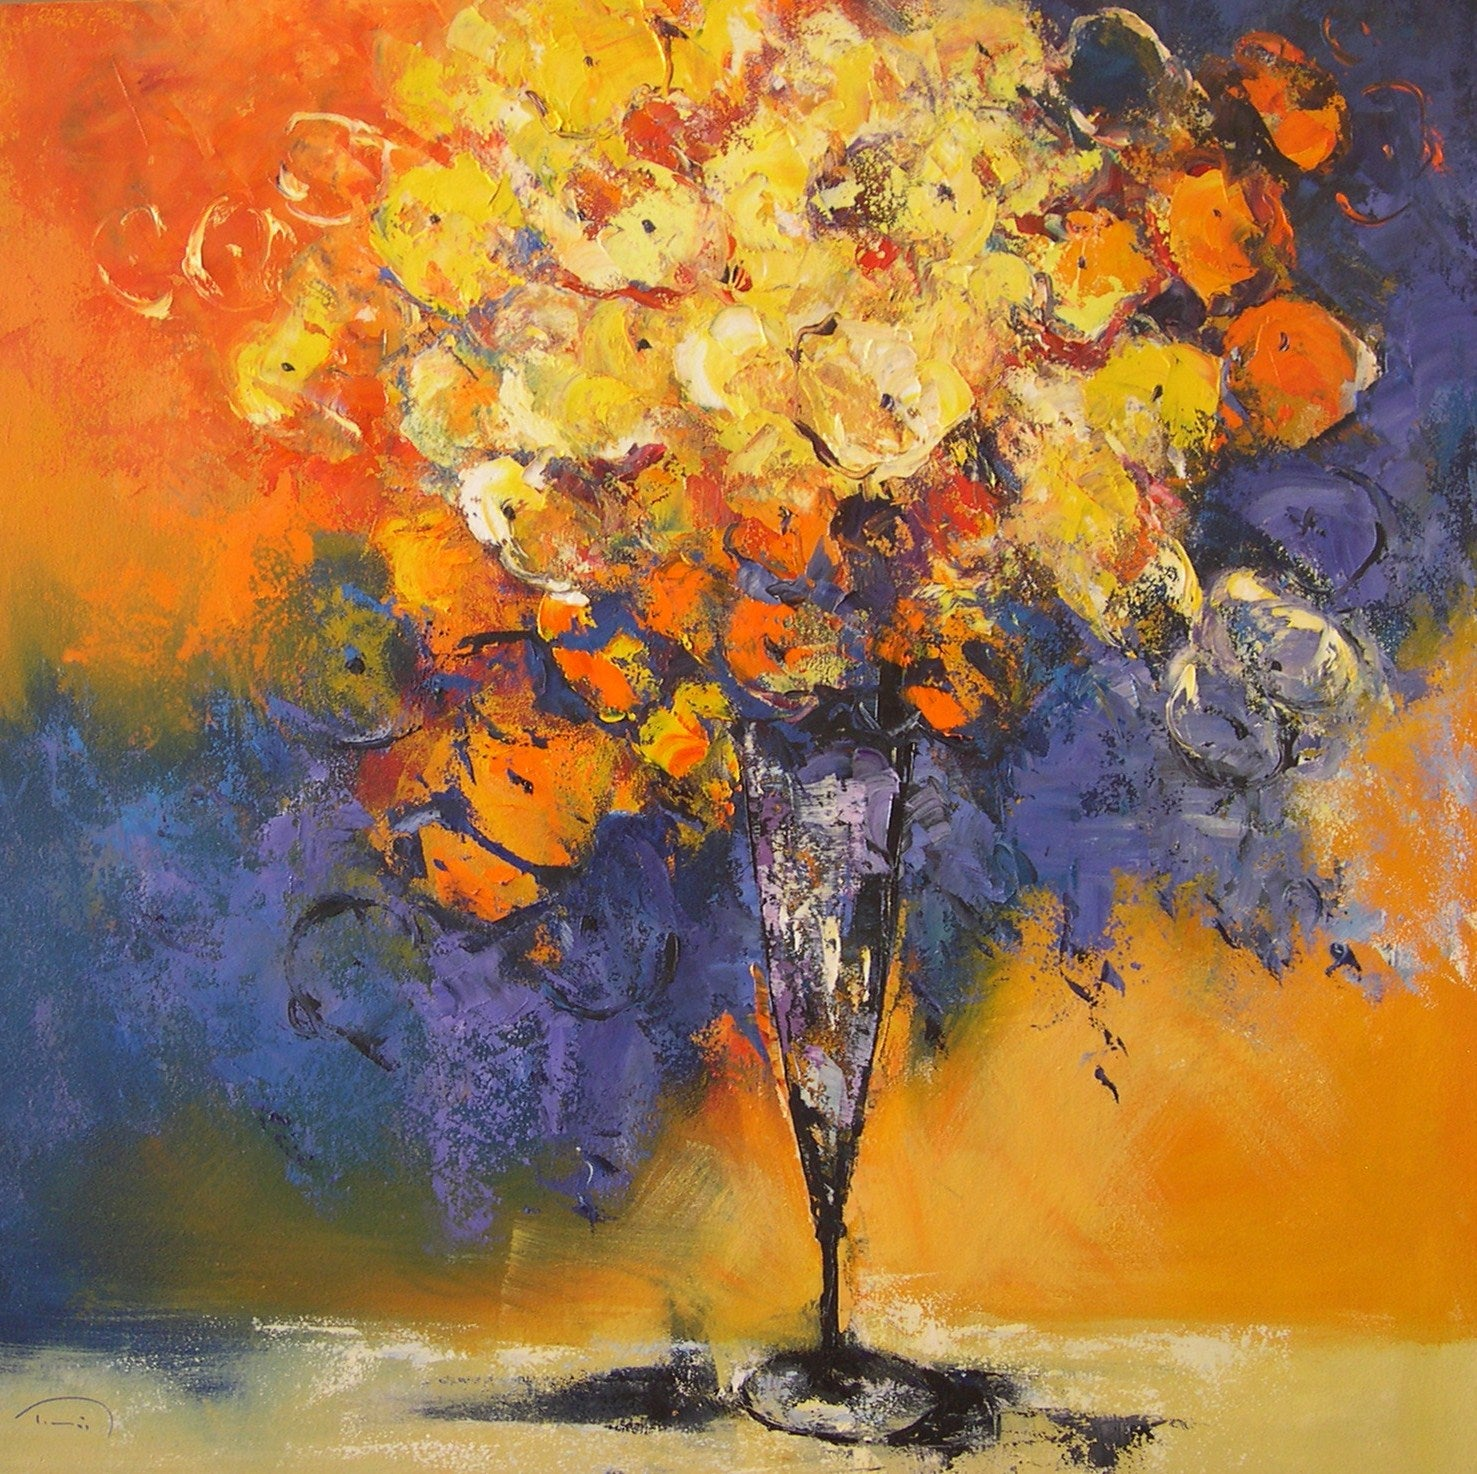 Esquitxos - 21st Century, Contemporary, Still Life Oil Painting, Canvas, Flowers